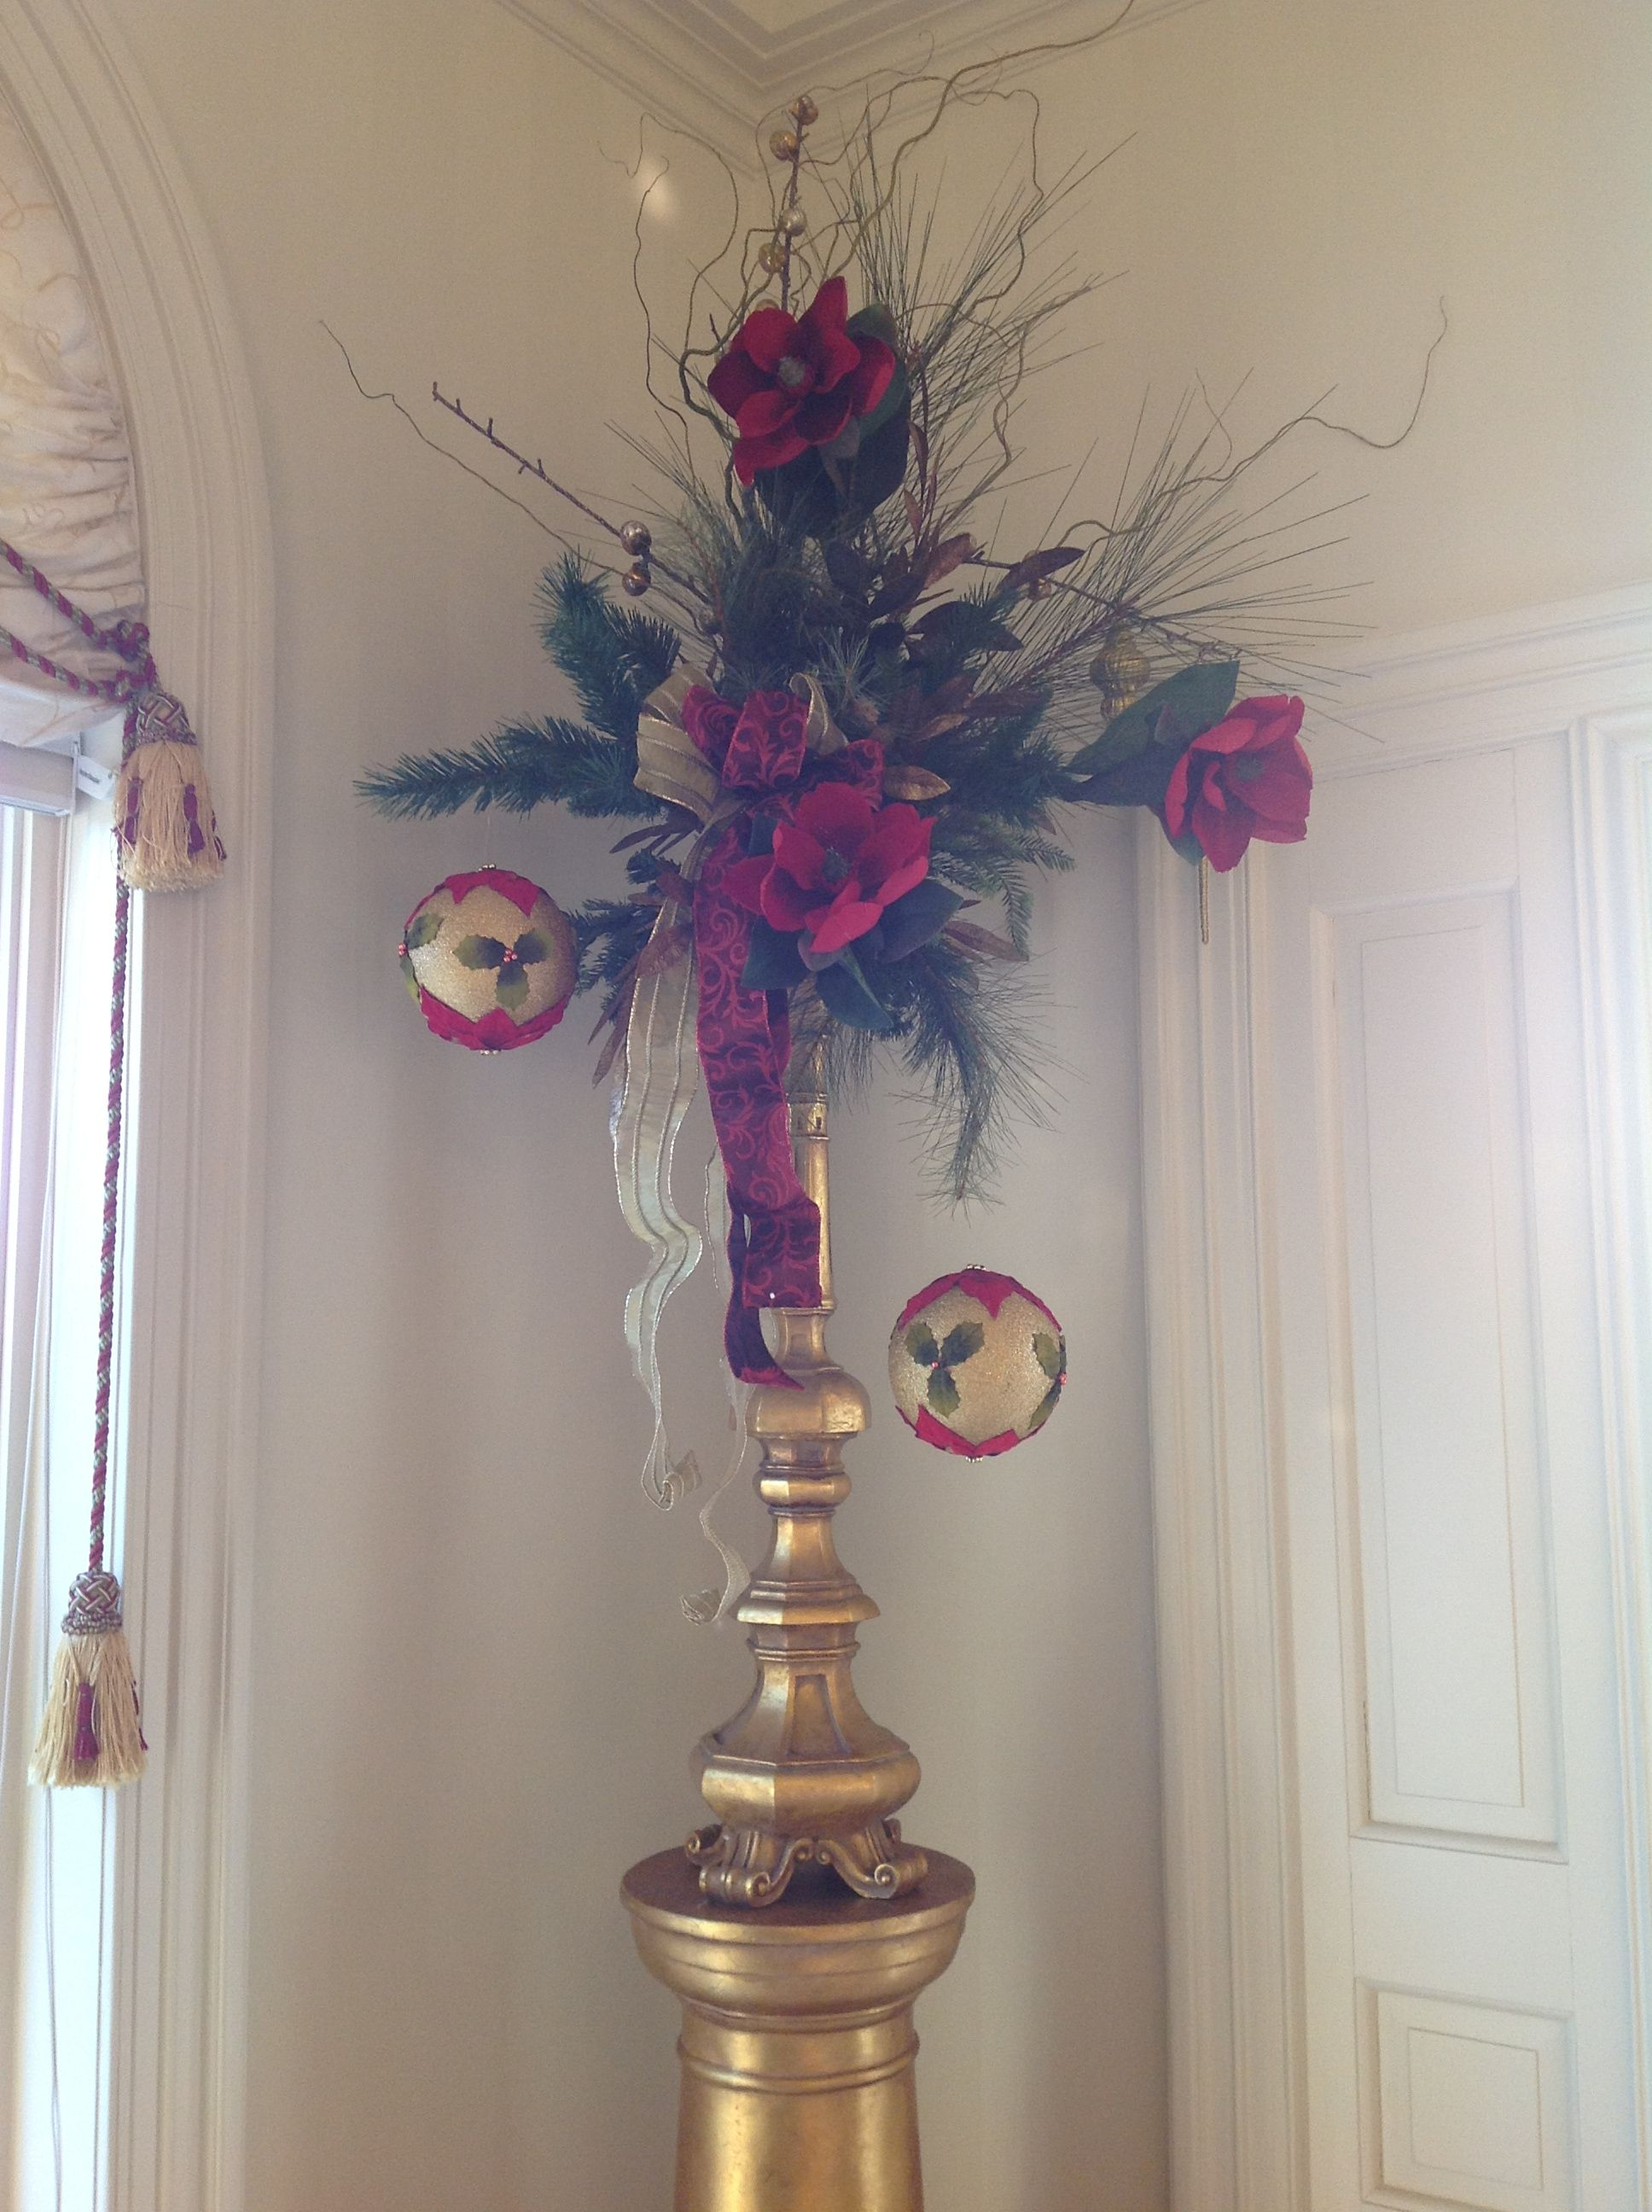 Another of Lynn's stunning arrangements created for the room...almost touched the ceiling!